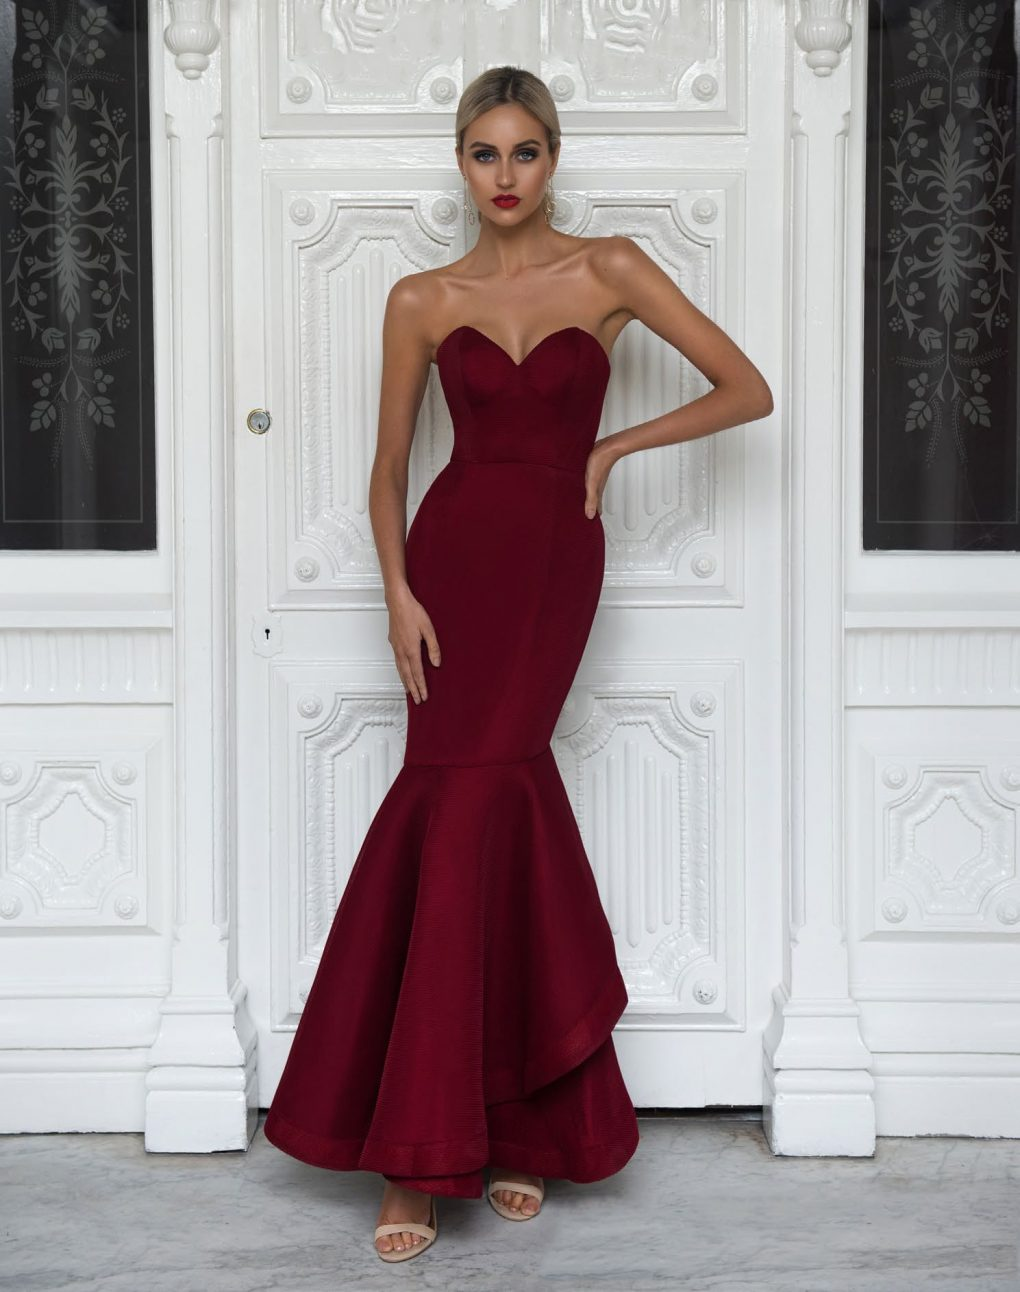 Alila-Strapless-fishtail-burgundy-debs-dress-Bariano